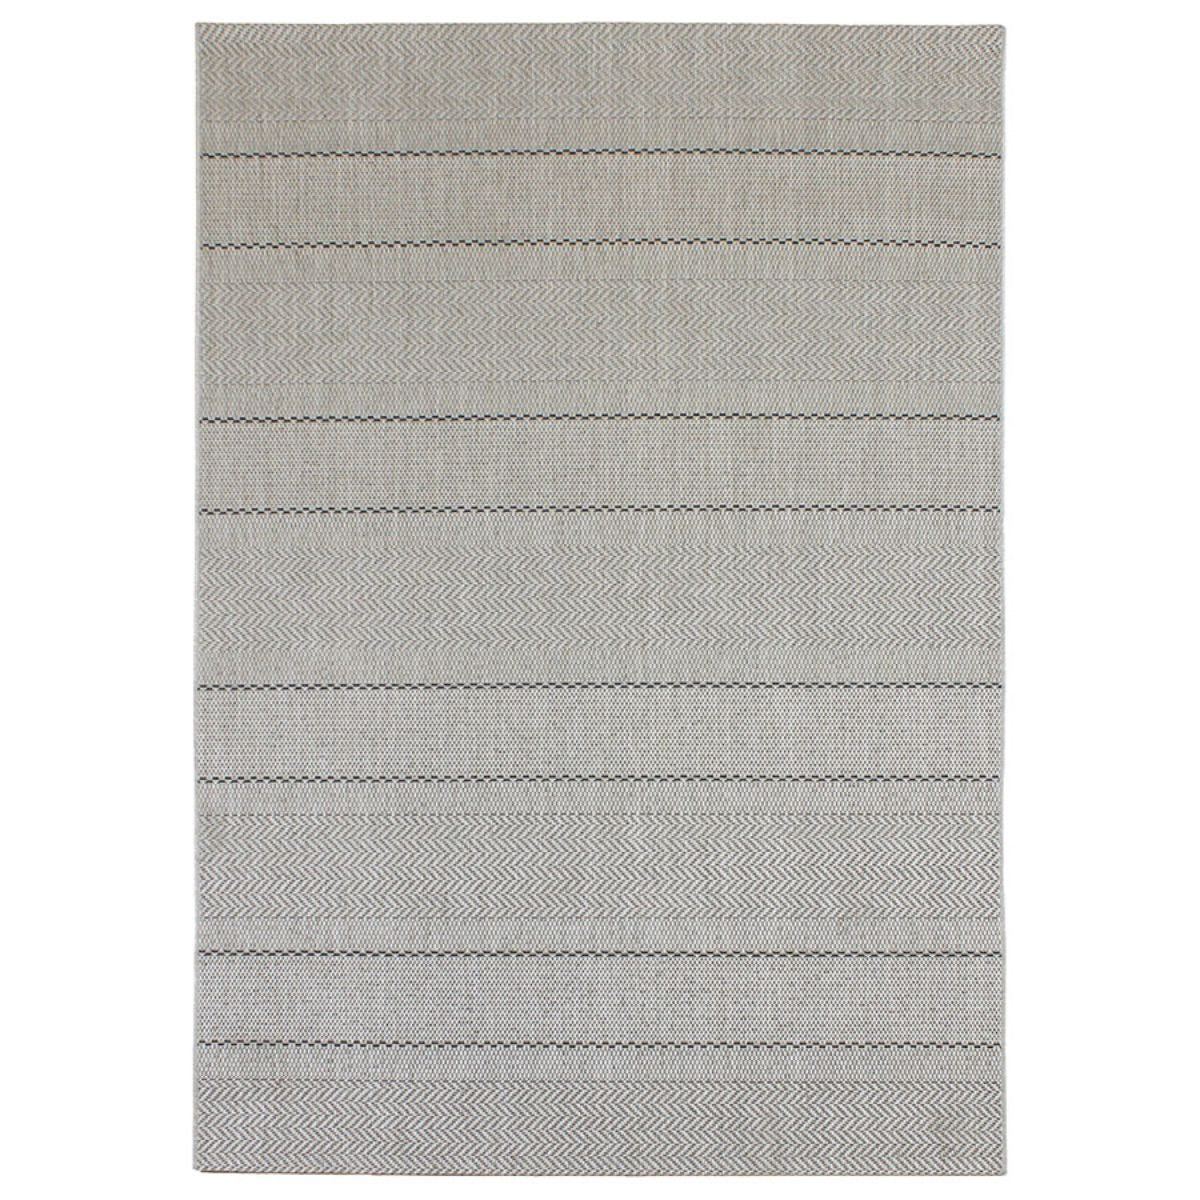 Asiatic Patio Rug, 200 x 290cm - Beige Stripes